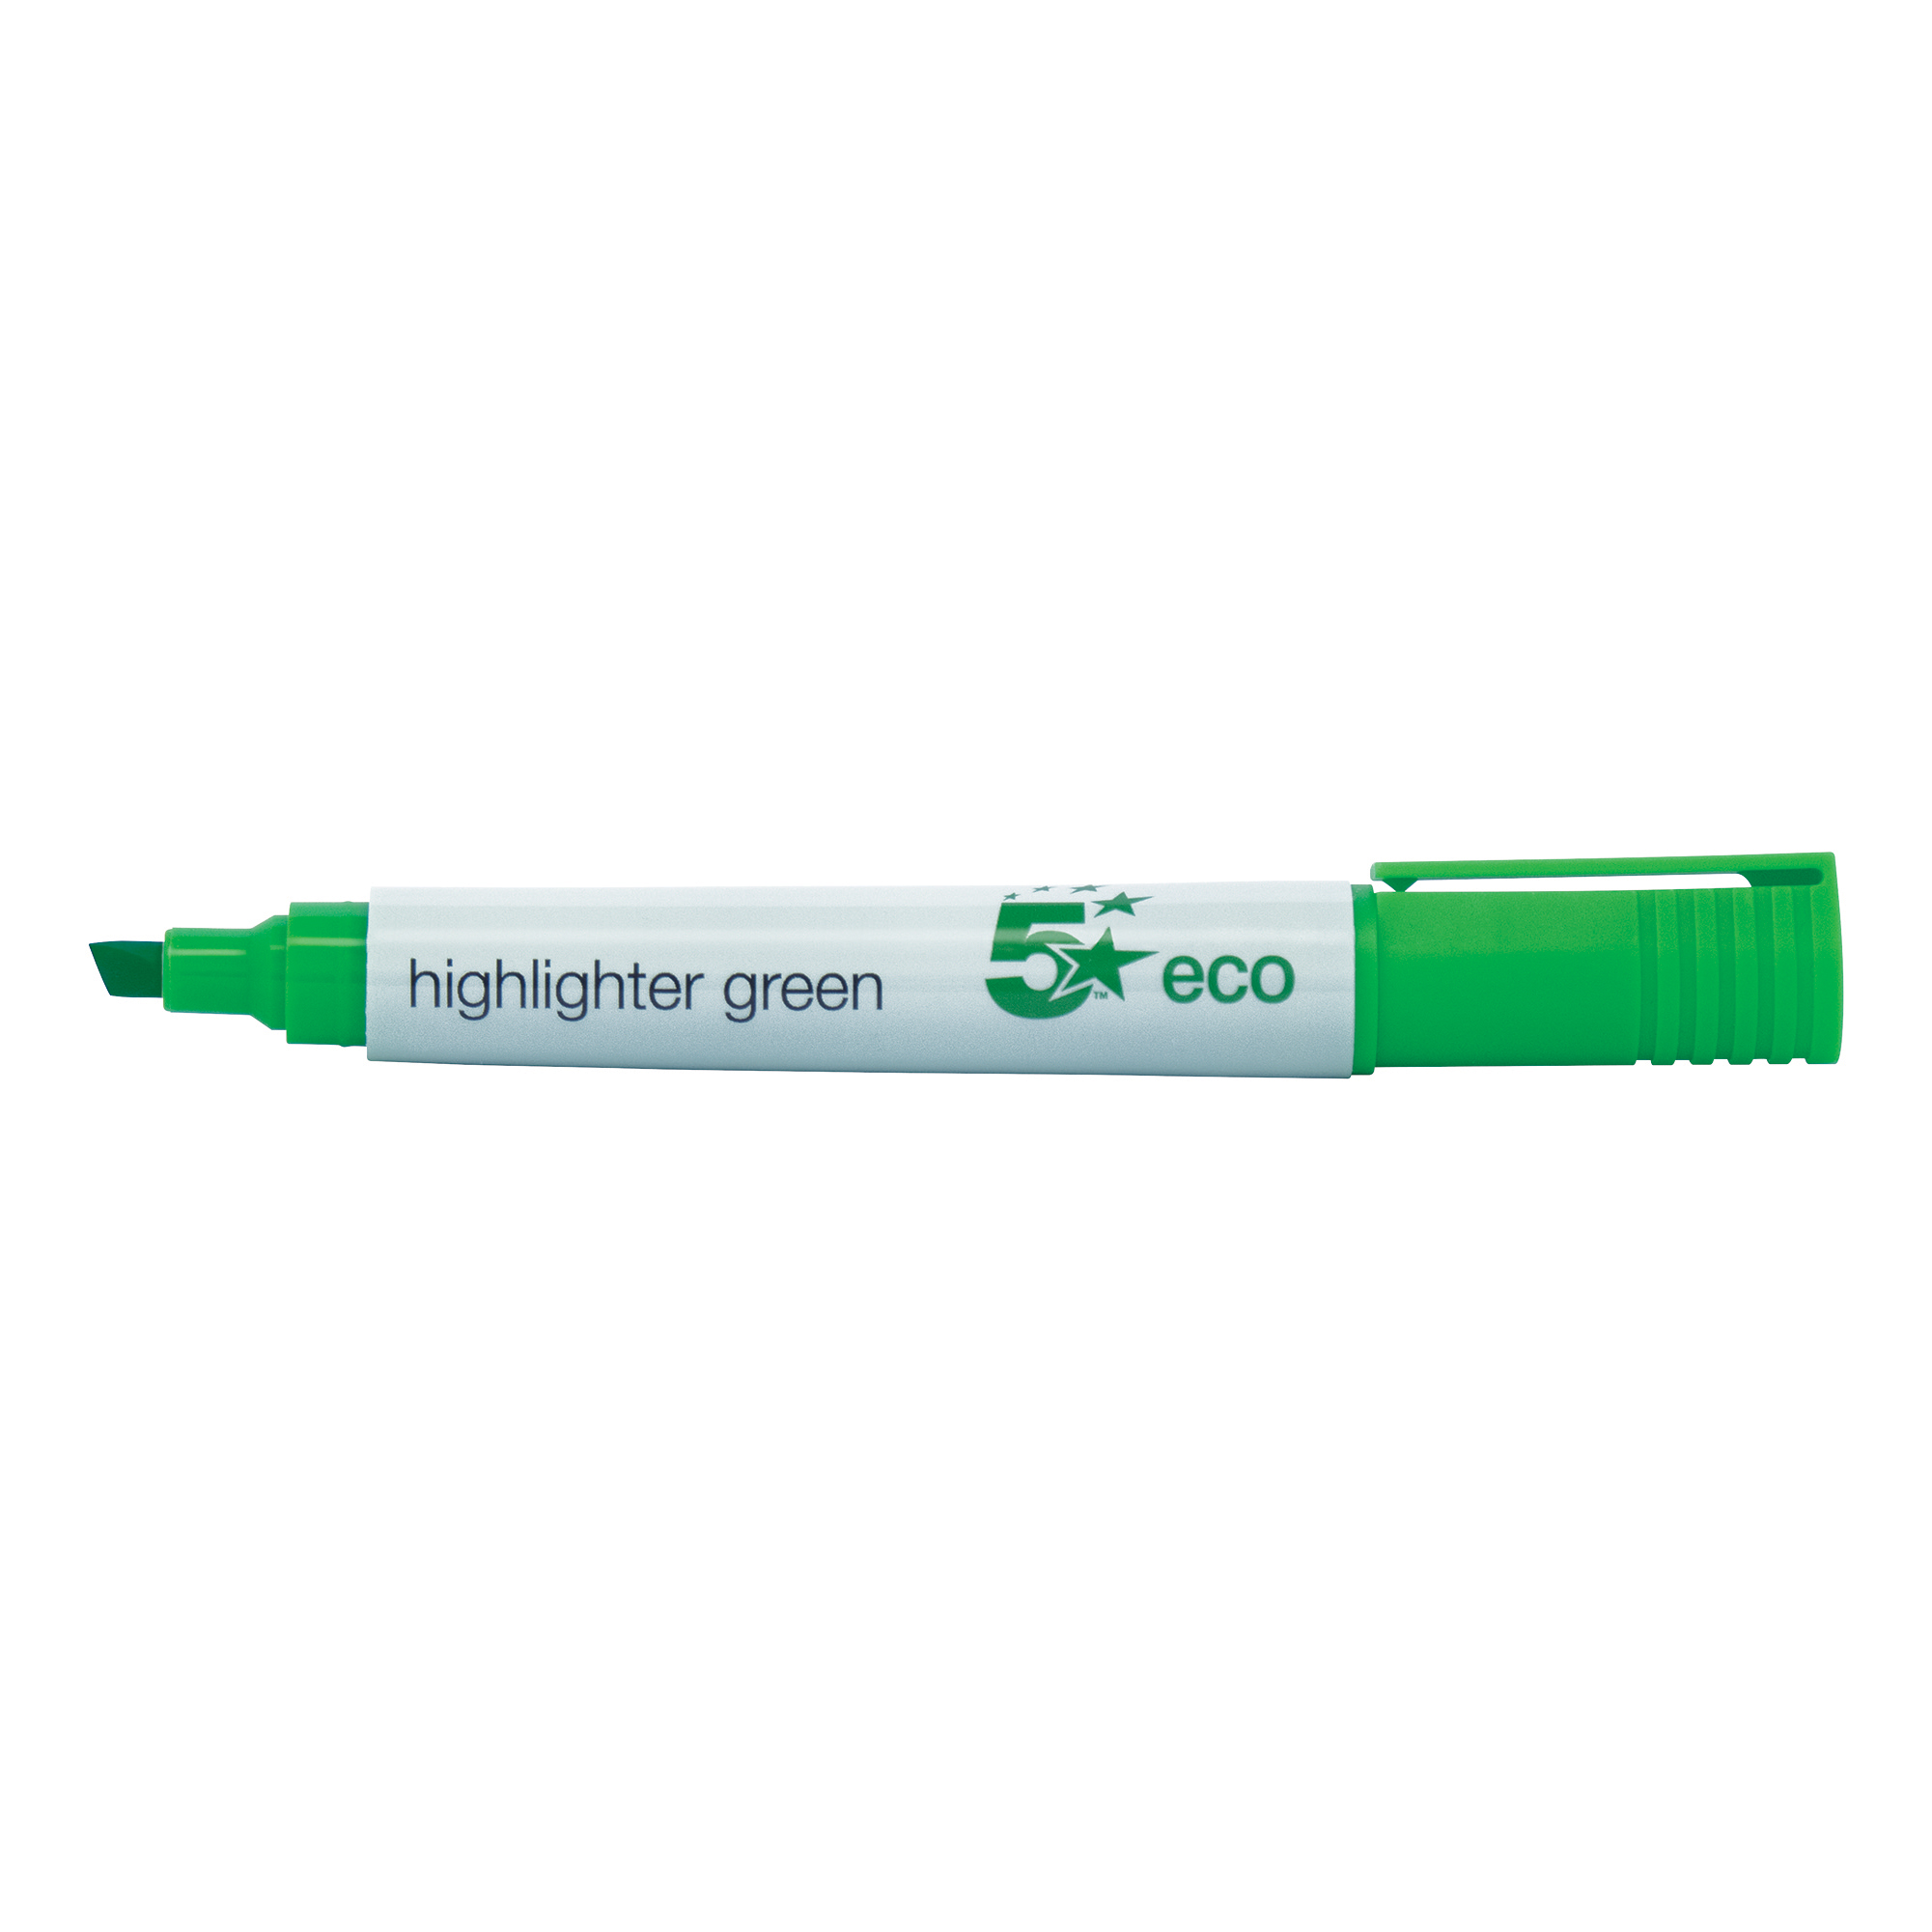 Image for 5 Star Eco Highlighter 1-5mm Line Green [Pack 10]